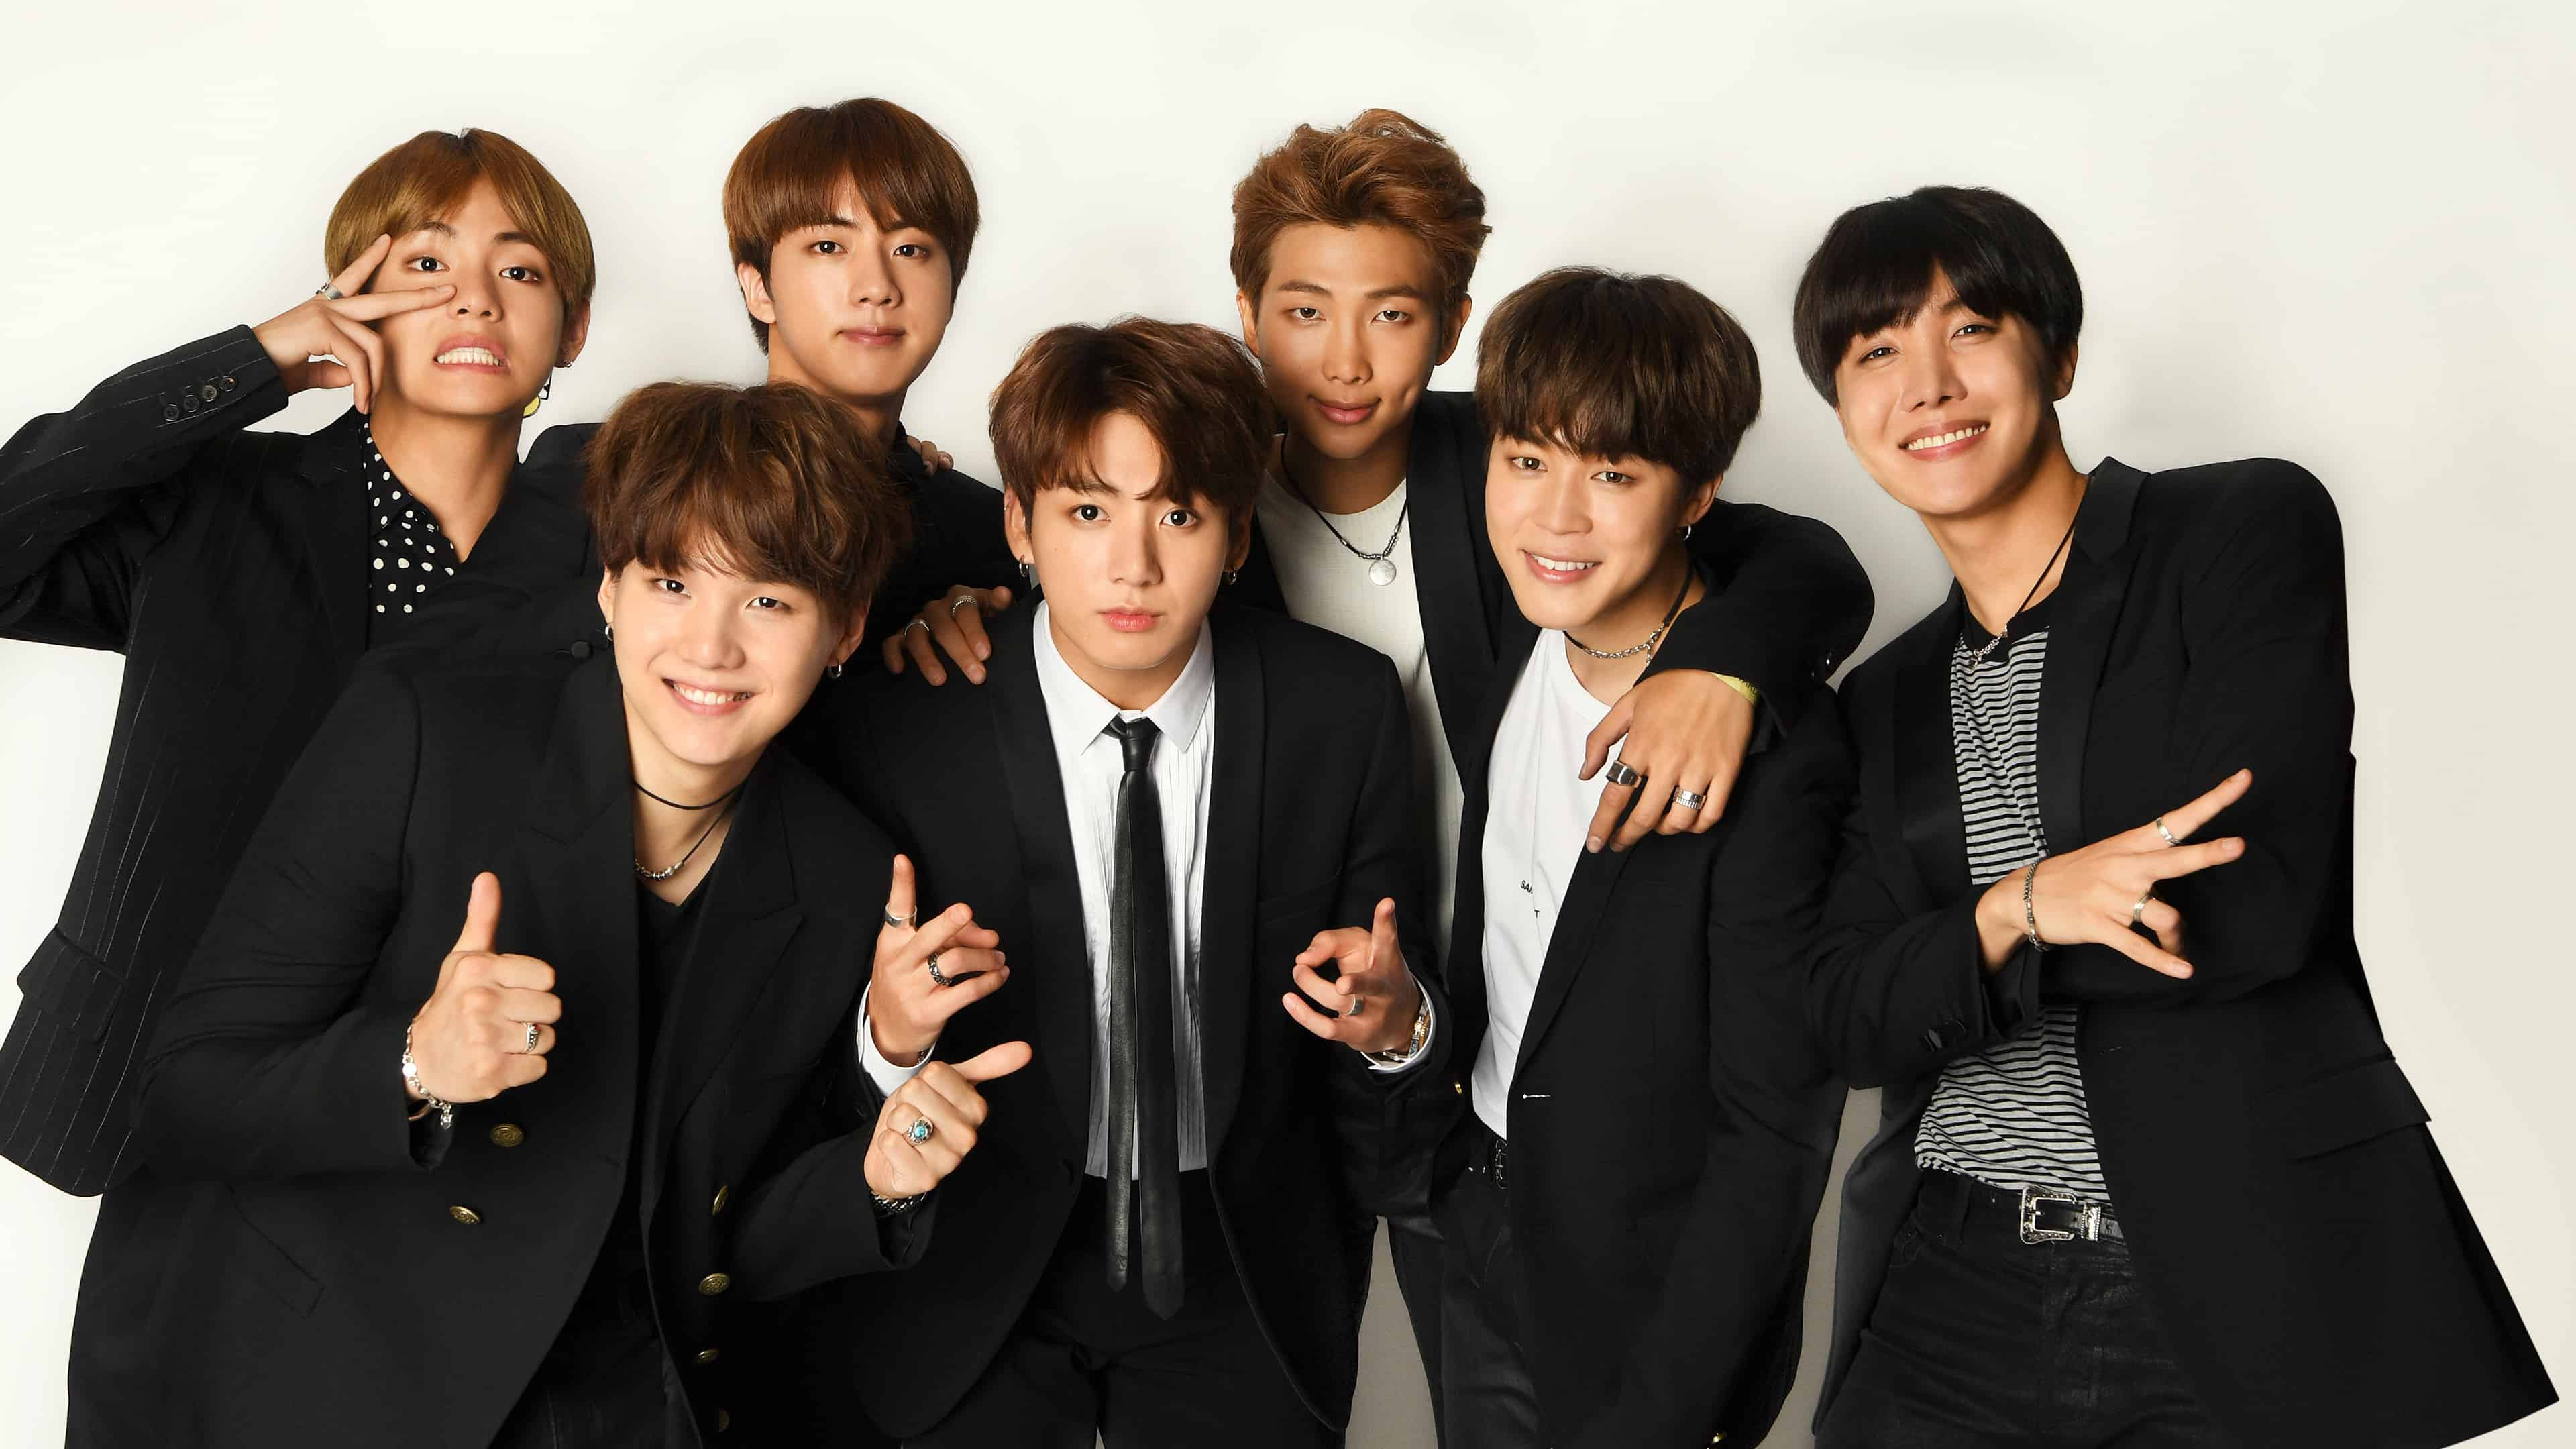 Bts 2020 Computer Wallpapers Top Free Bts 2020 Computer Backgrounds Wallpaperaccess